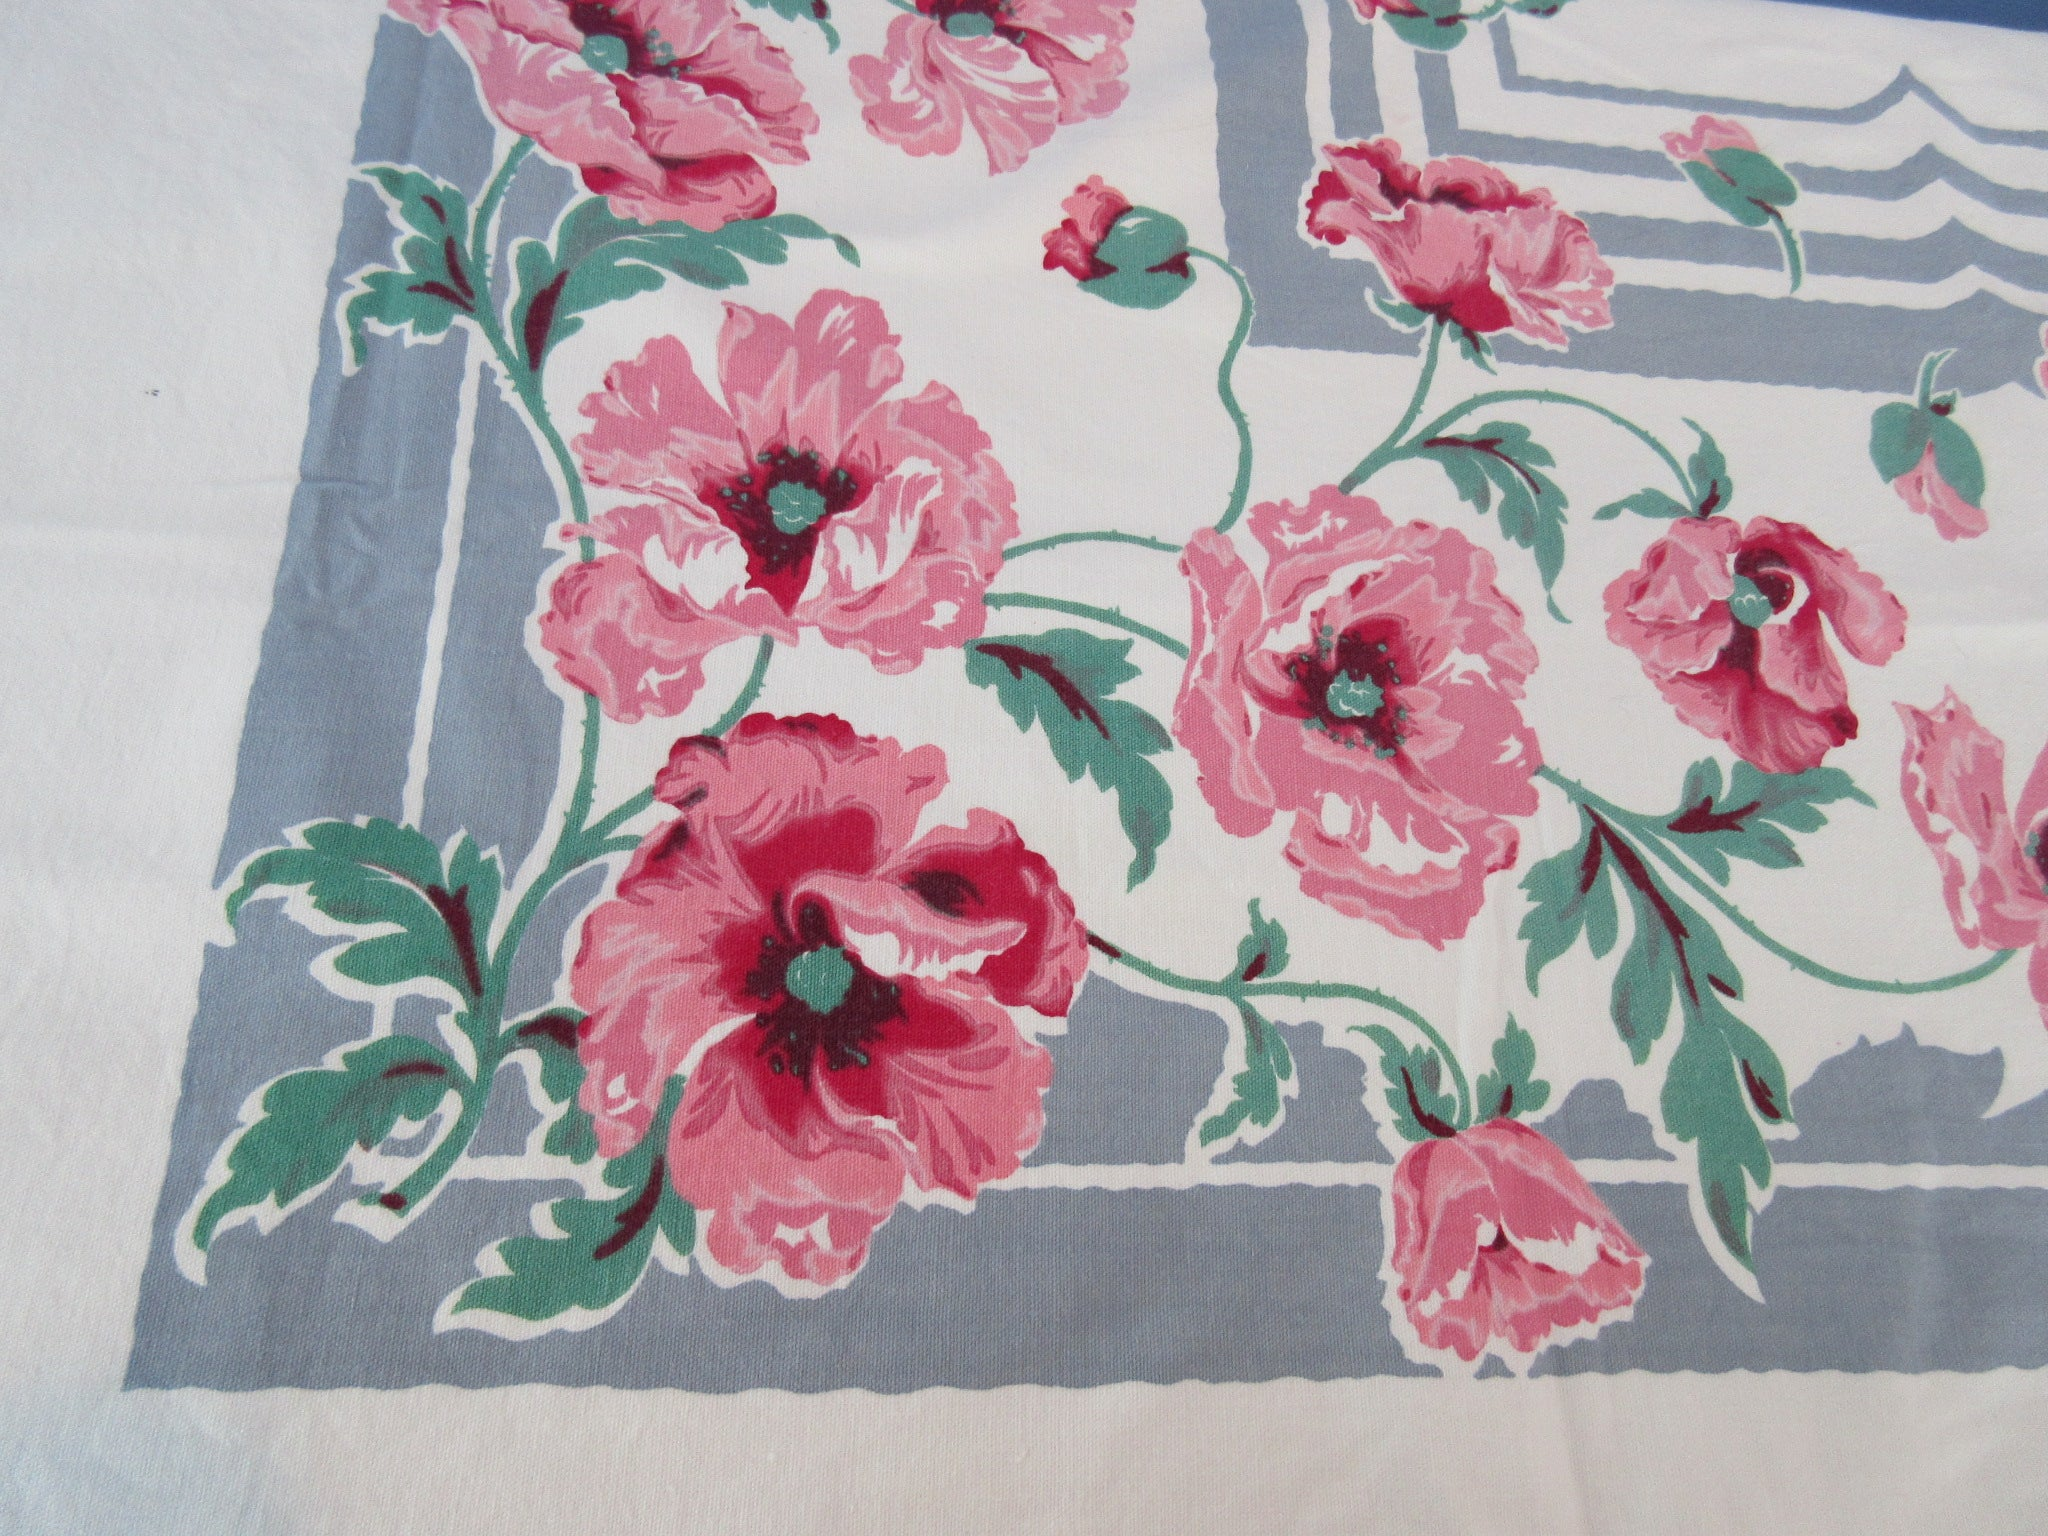 Giant Heavy Pink Poppies on Gray Floral Vintage Printed Tablecloth (92 X 59)